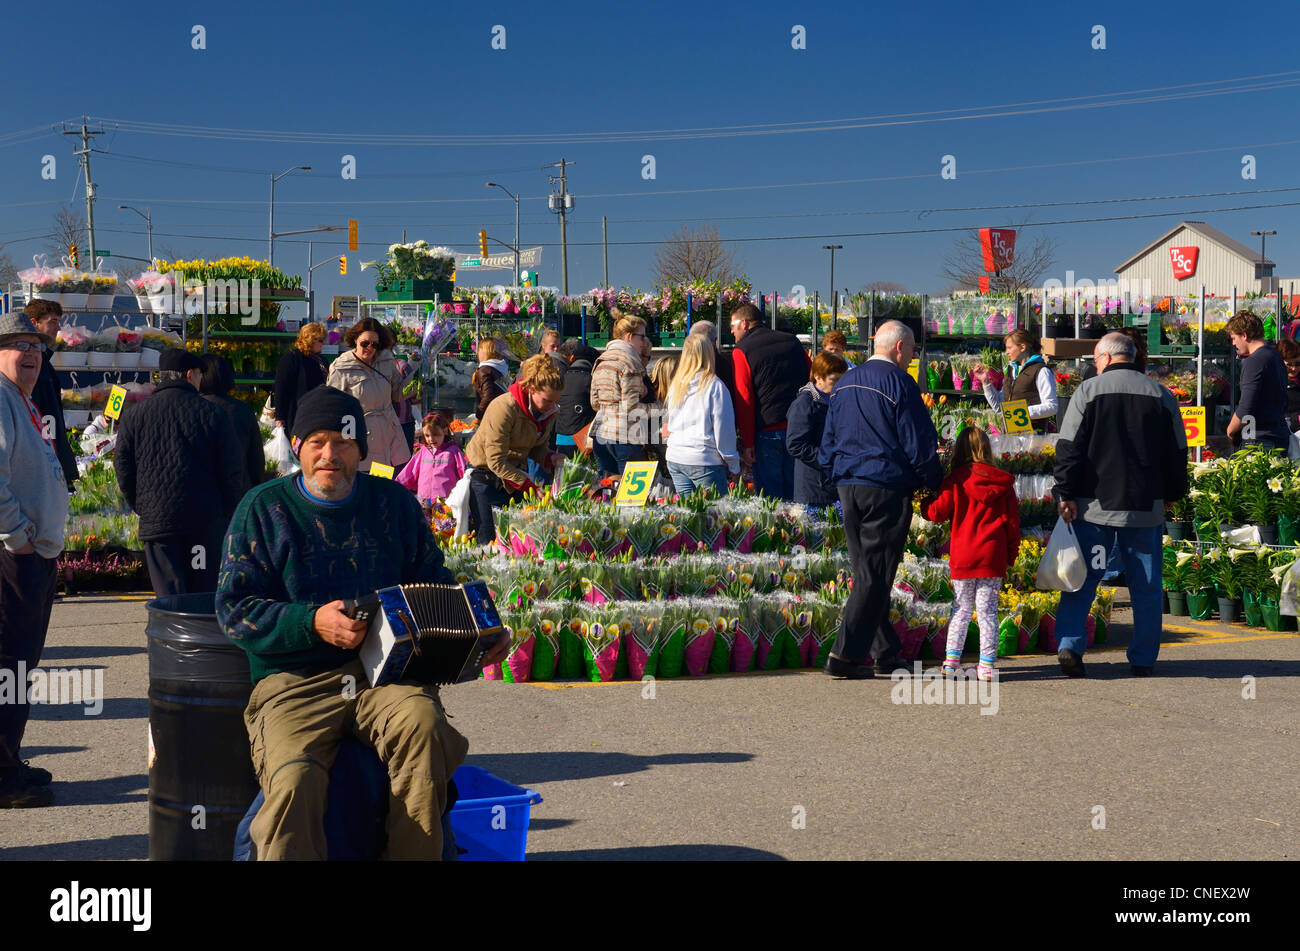 Accordion busker with flower shoppers at the outdoor open St Jacobs Farmers Market in Ontario - Stock Image